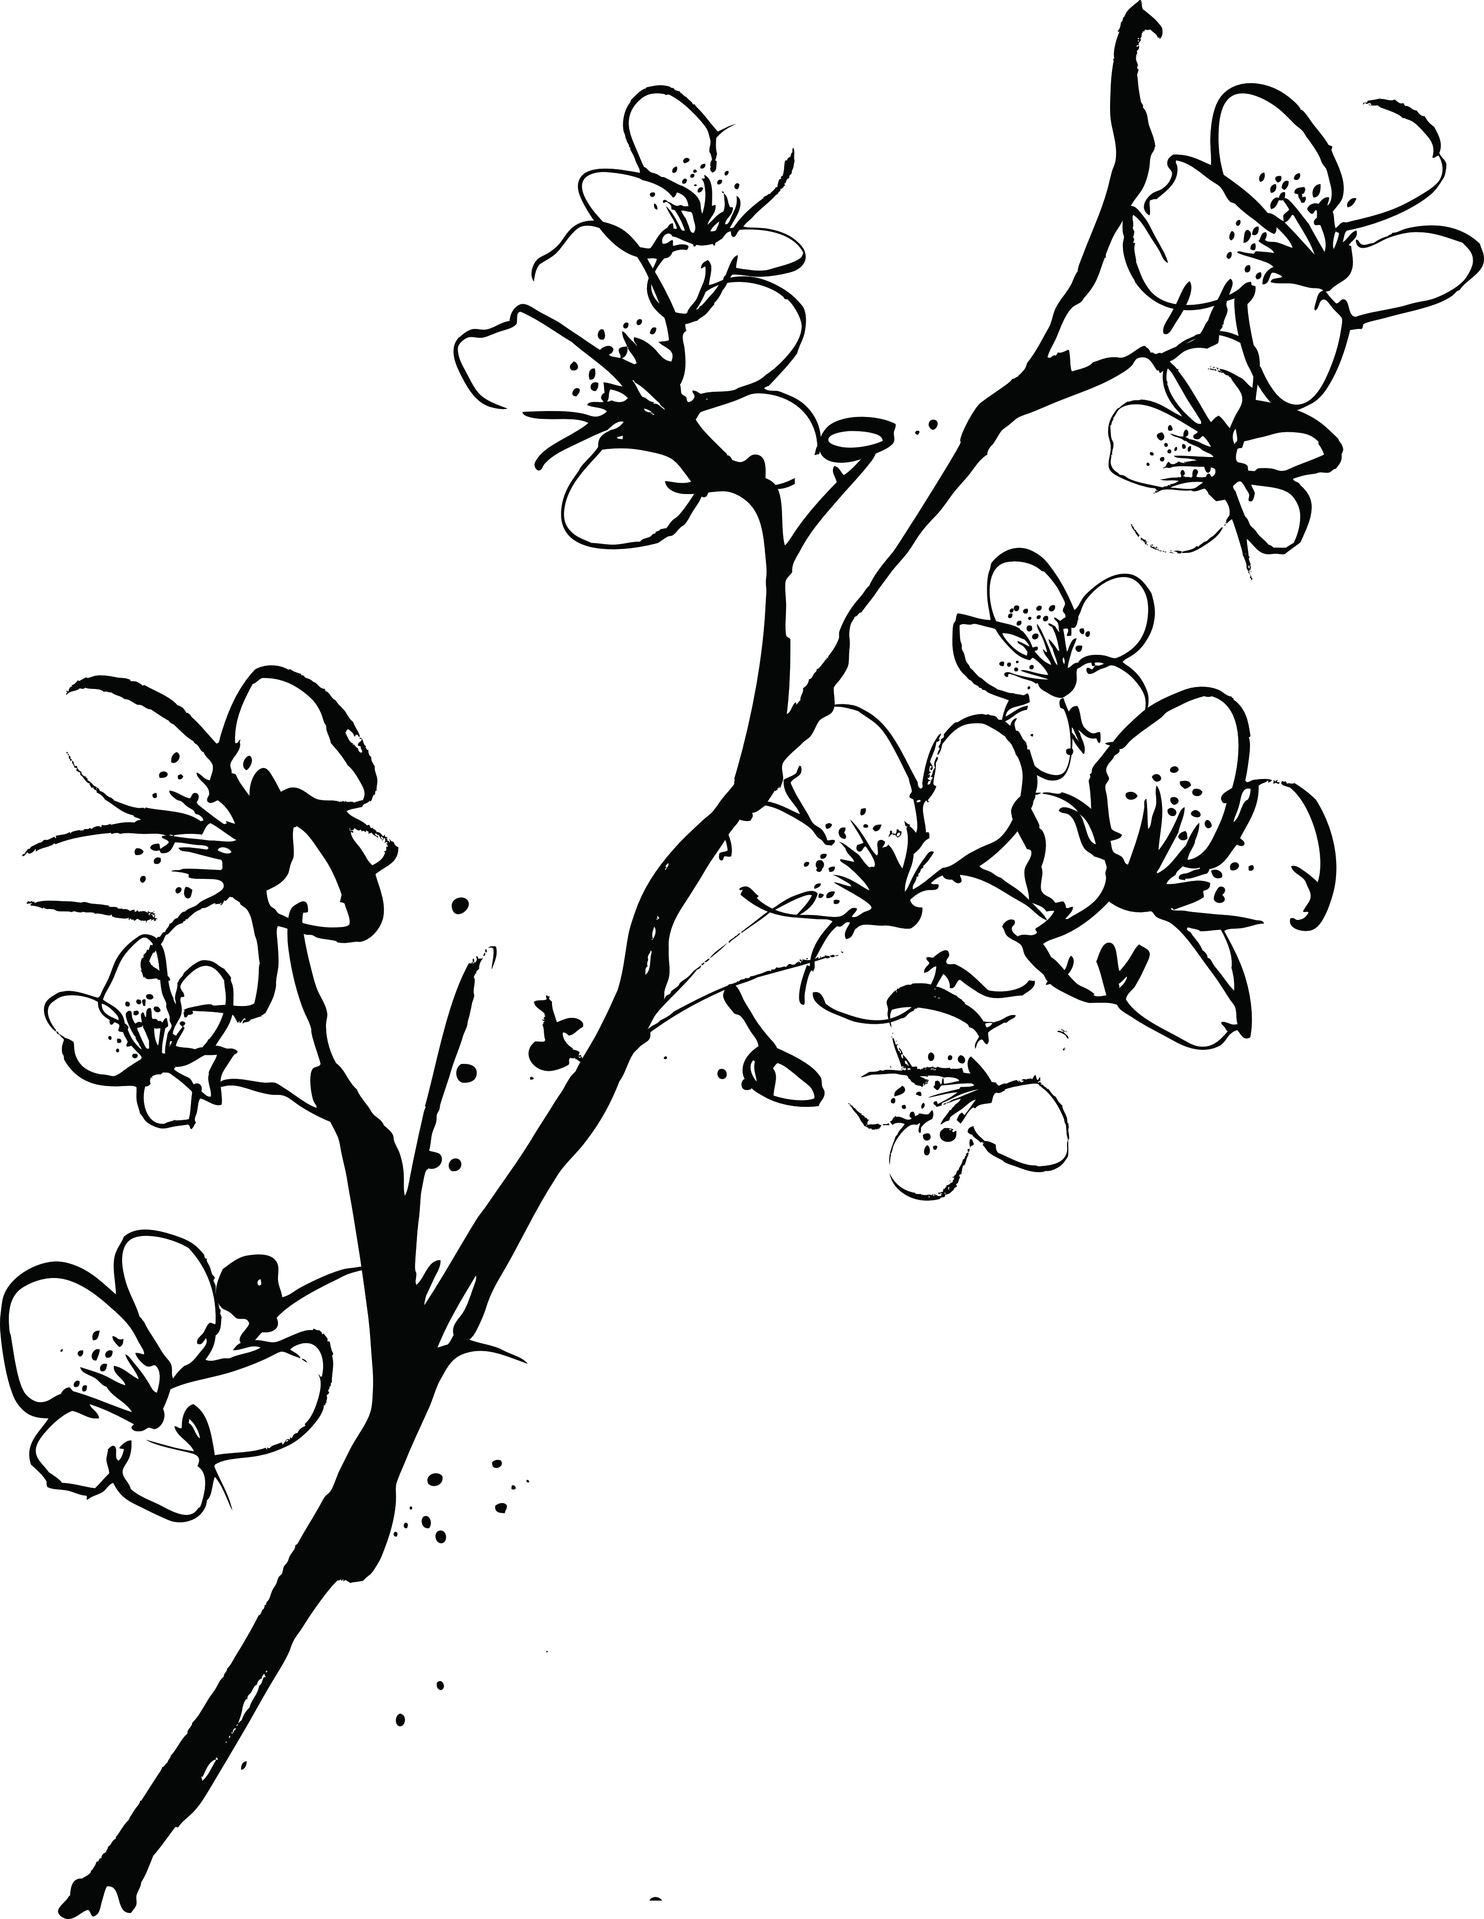 blossom tree drawing cherry blossom tree drawing easy at getdrawings free tree blossom drawing